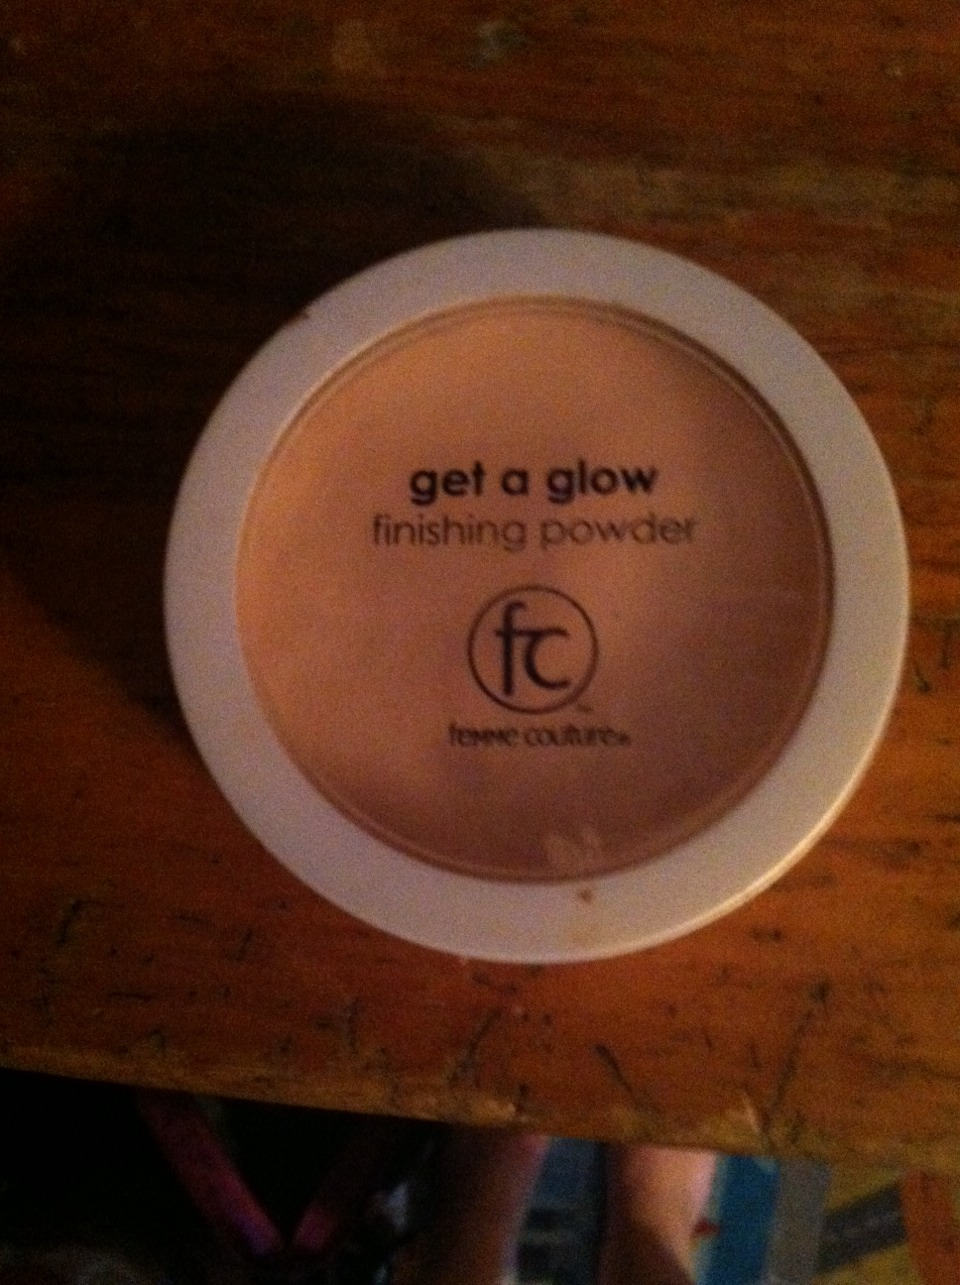 The final step is a finishing powder to get a beautiful soft glow. This one is amazing and cost around $12 also. So after your done with the powder you apply this with the makeup brush but only along your cheek bones middle forehead and center of your chin.